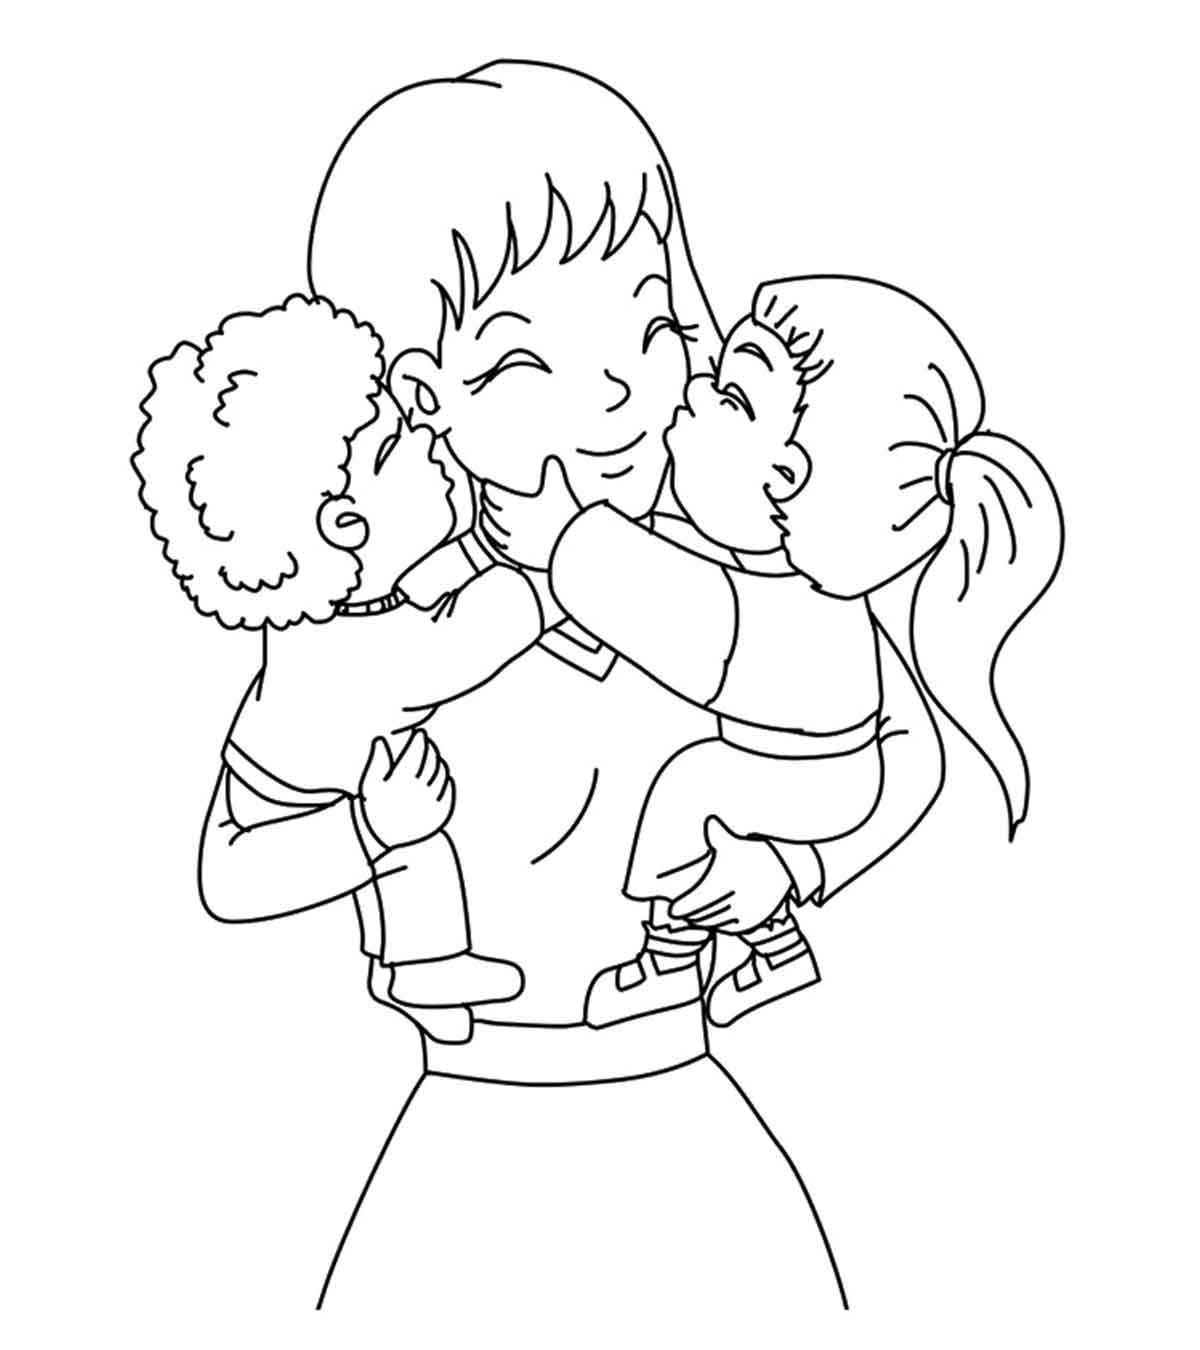 World Teacher Day Coloring Pages | Drawing for Kids | How to Draw ... | 1350x1200